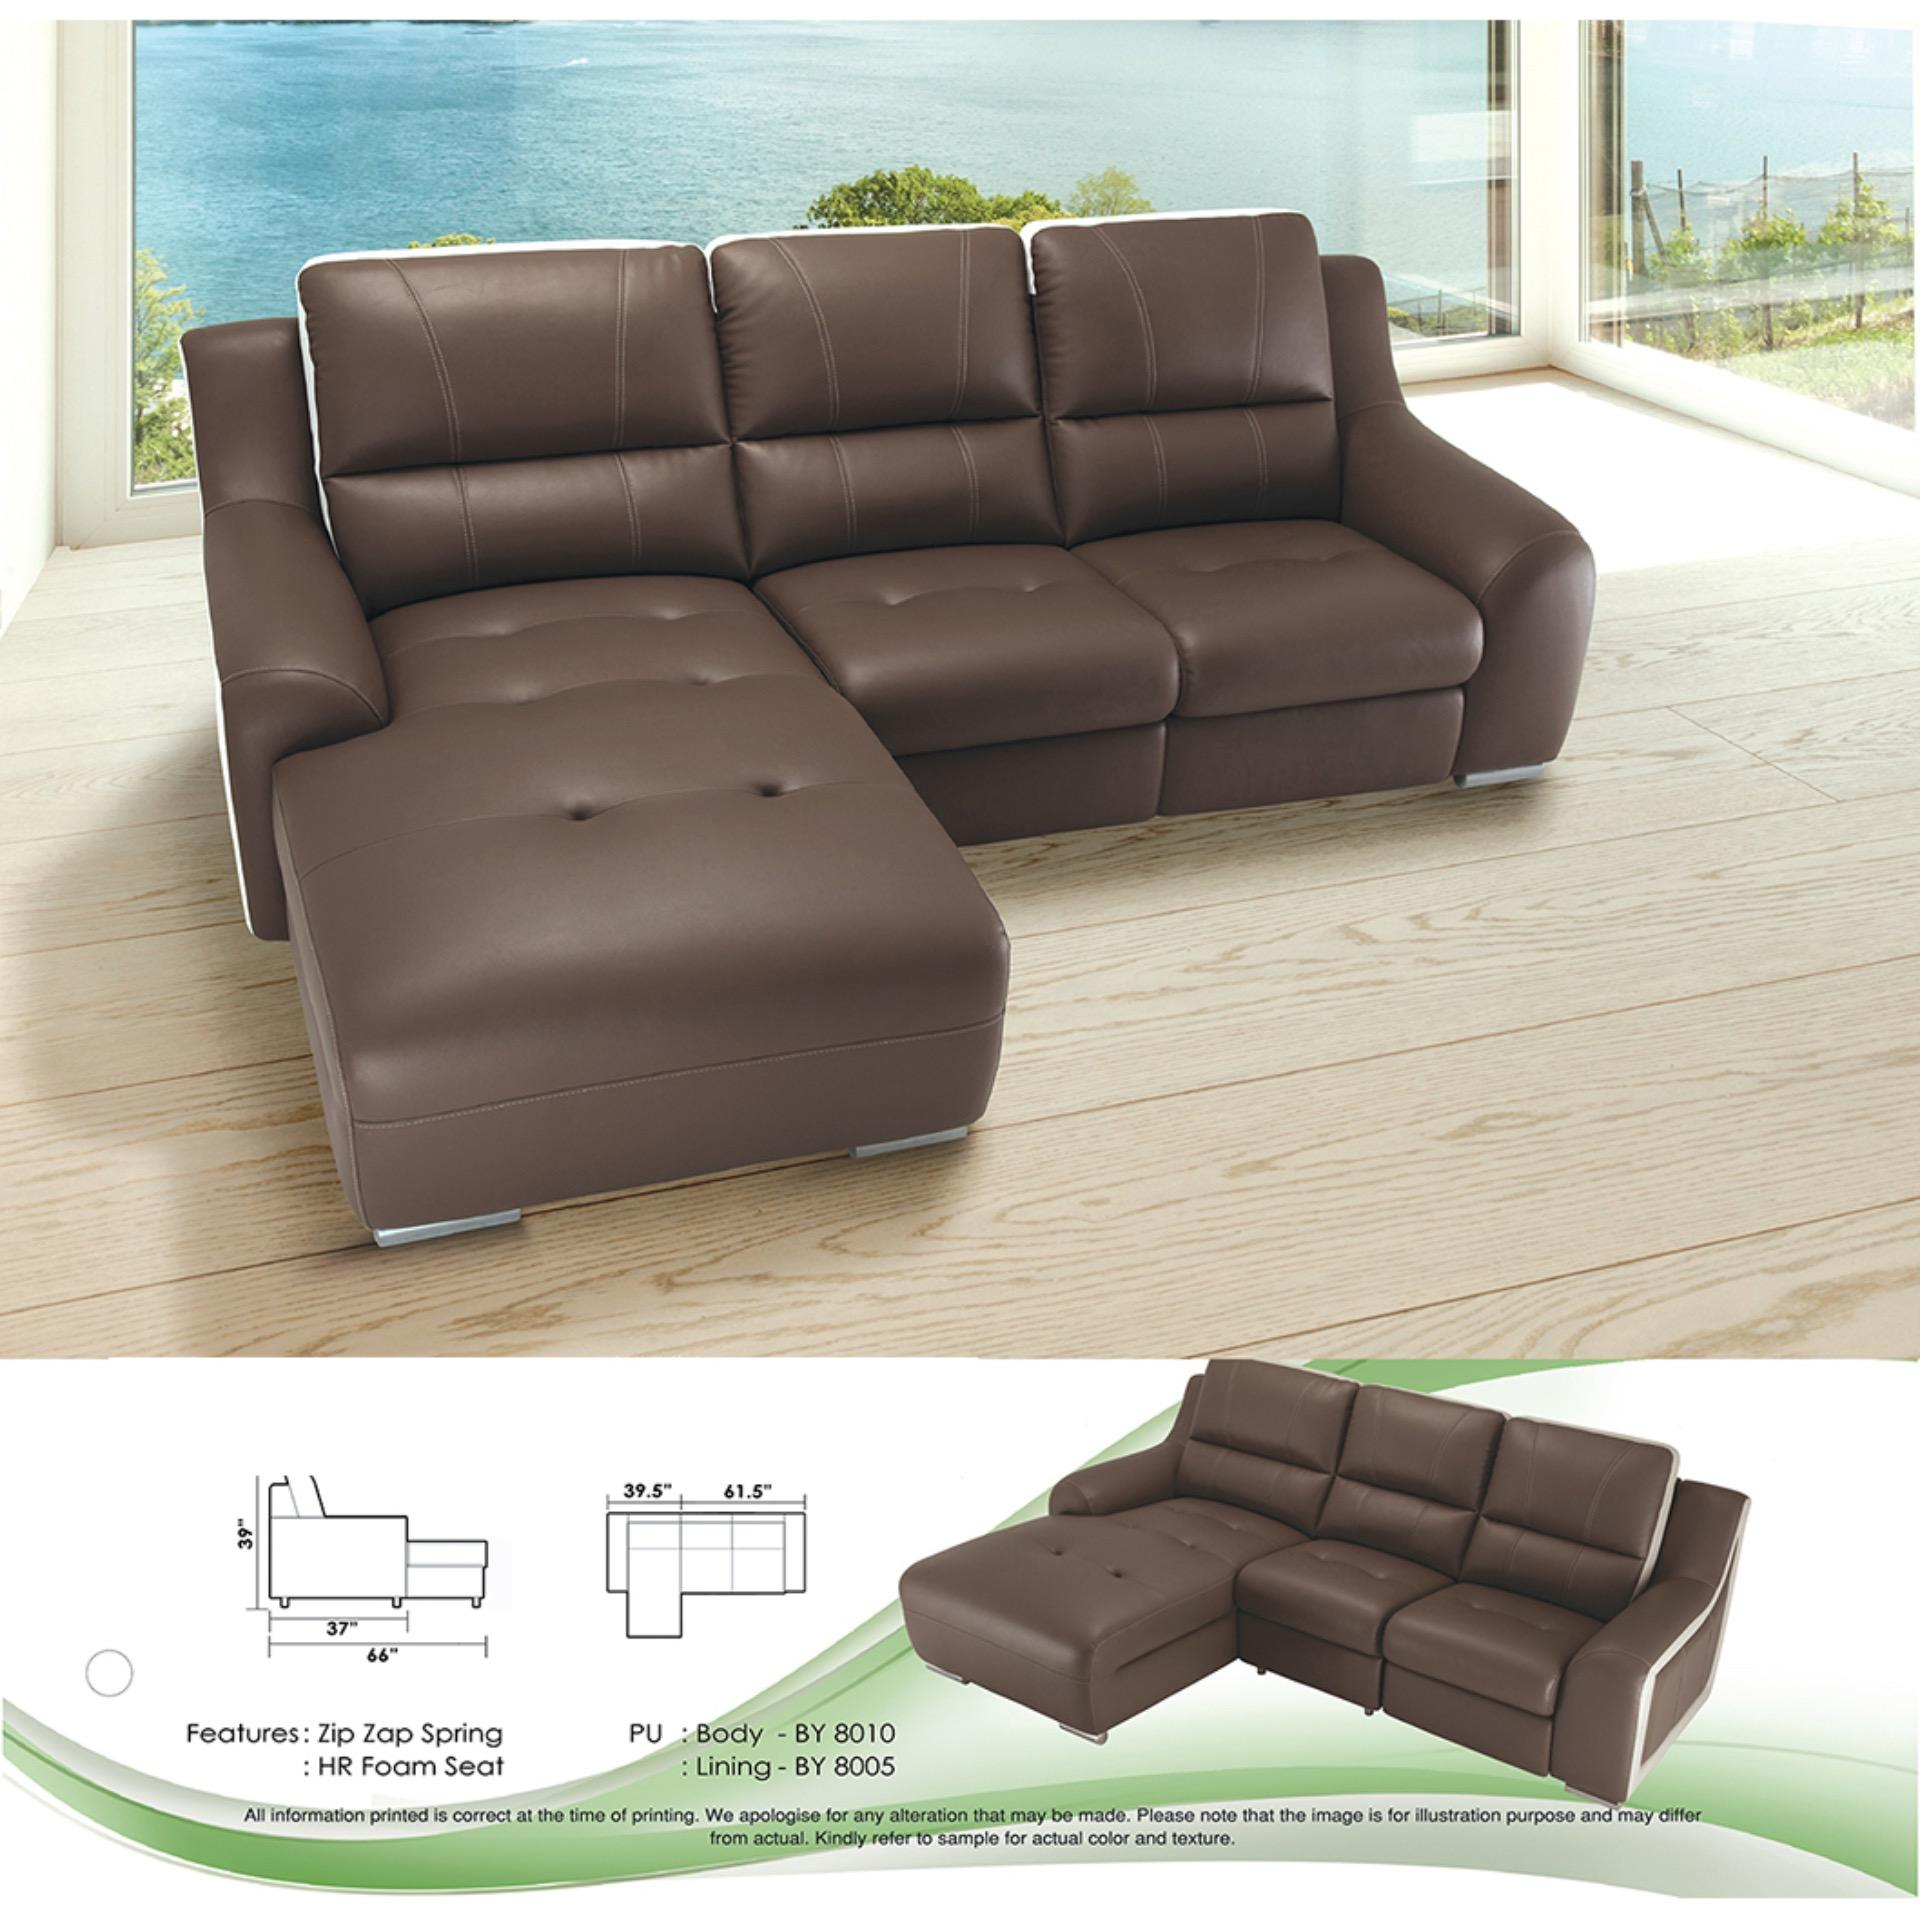 L-Shape Sofa Fully Leather Sofa Relax Chair Lounge Chair Sofa